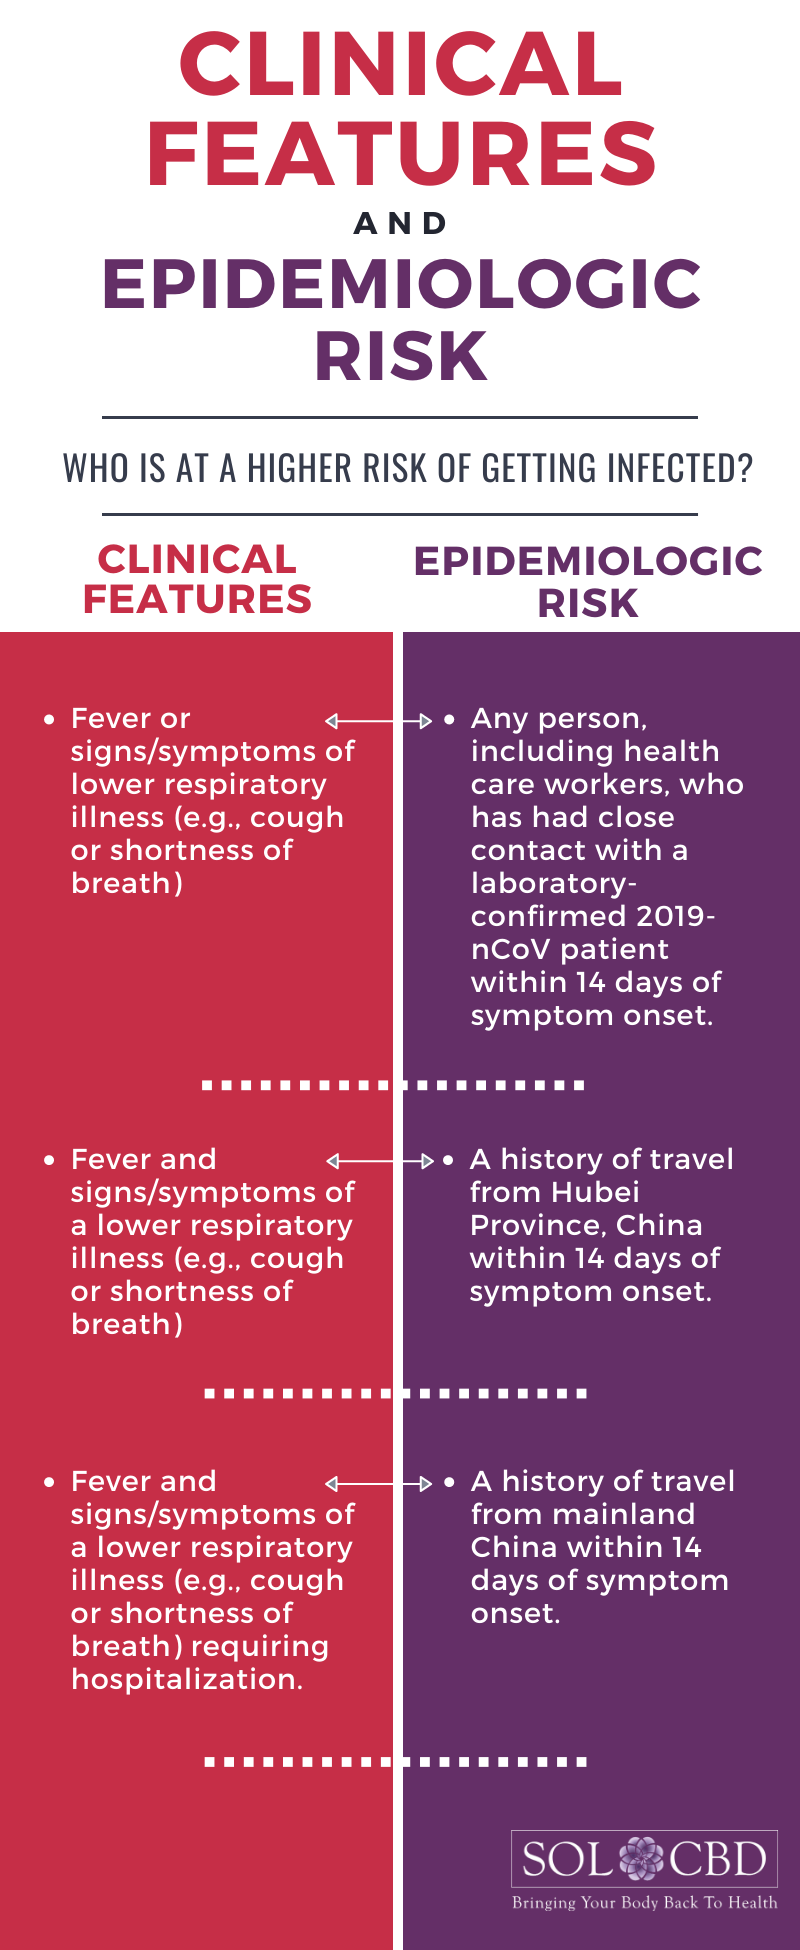 The criteria for high-risk Coronavirus cases are very limited.